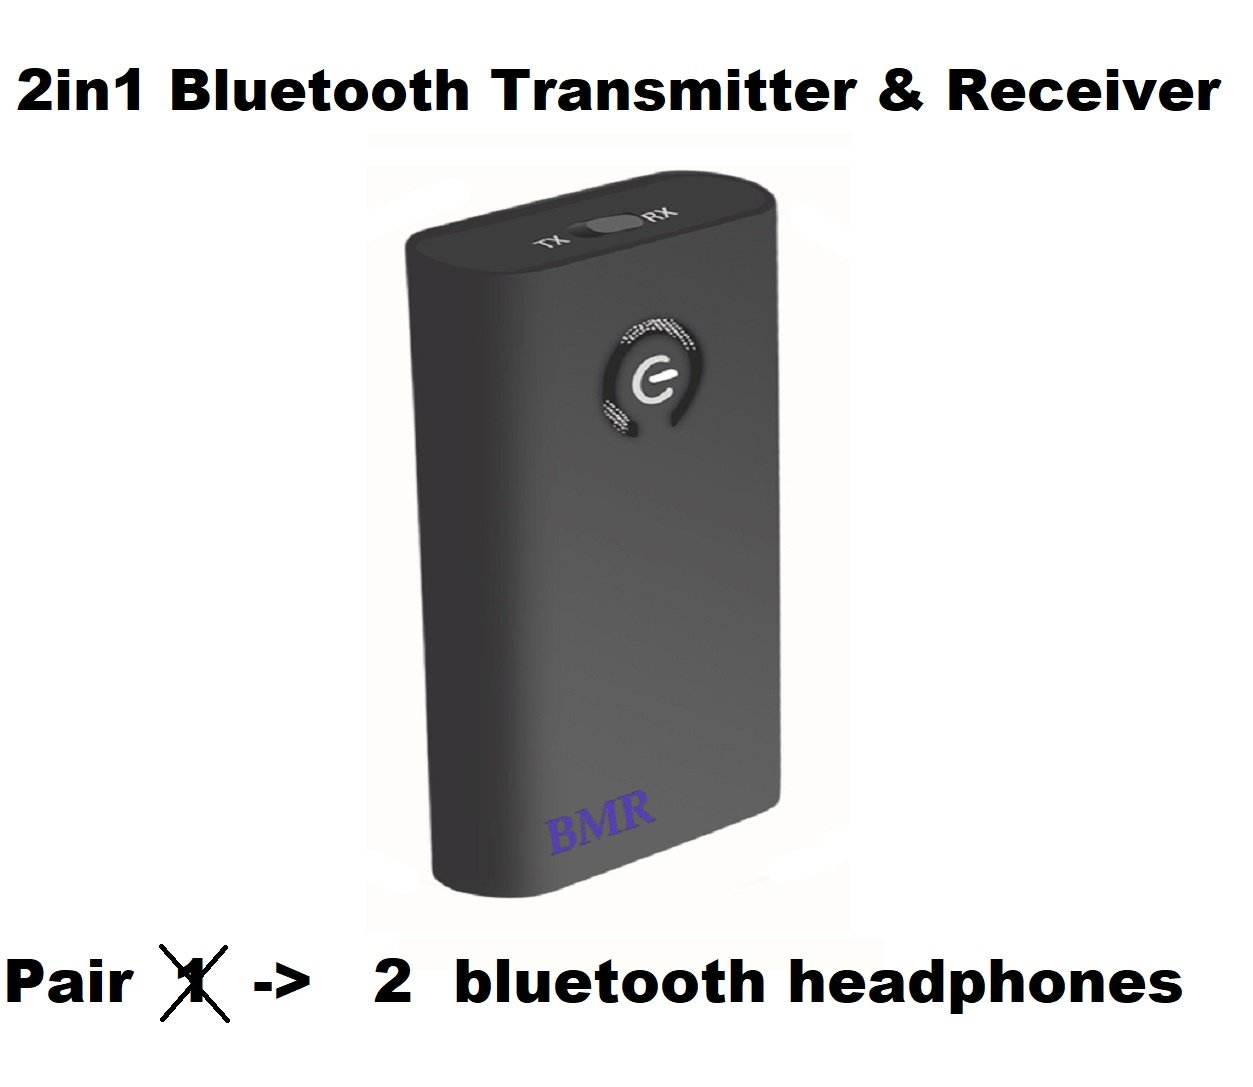 Buy CAIWEI Portable Wireless Bluetooth Transmitter